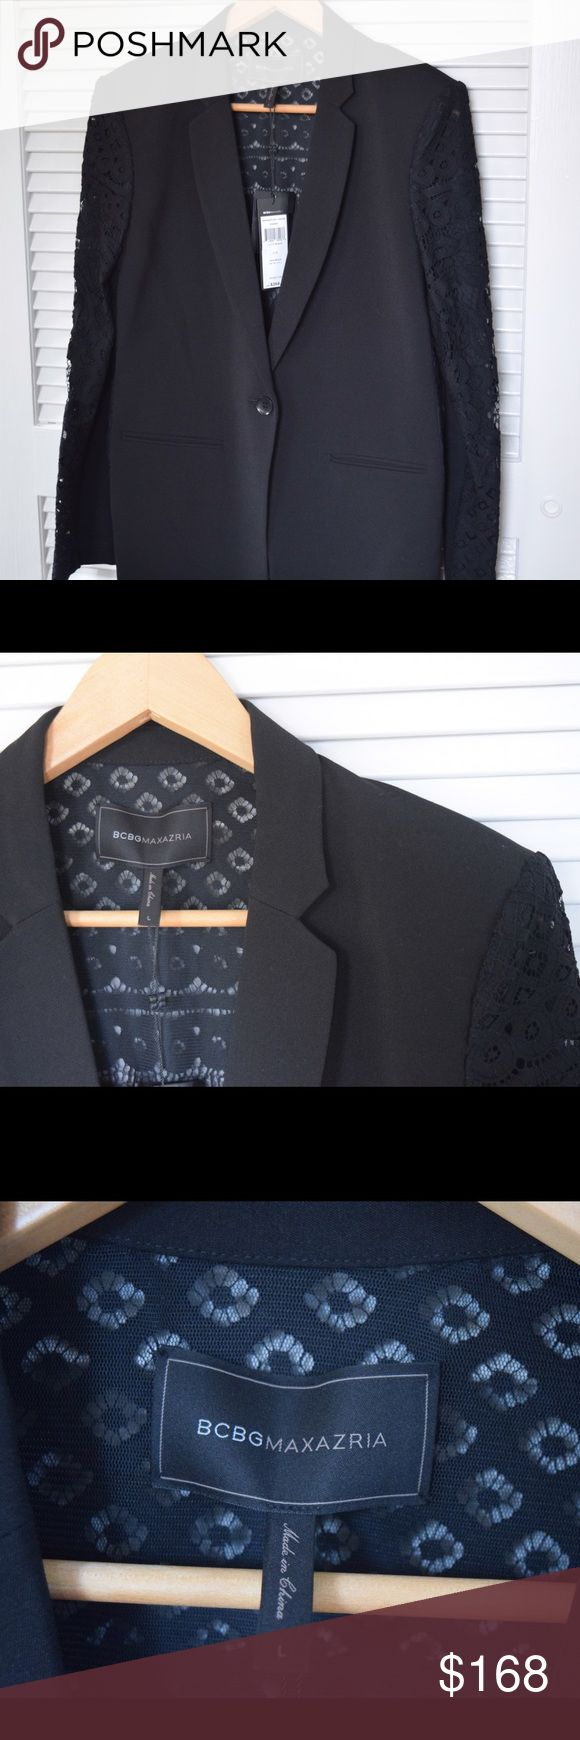 BCBG MazAzria Keanu Black Lace Blazer - NEW Sharply tailored Blazer with laced back and sleeves. One front button closure. Imported. Brand New With Tags. BCBGMaxAzria Jackets & Coats Blazers